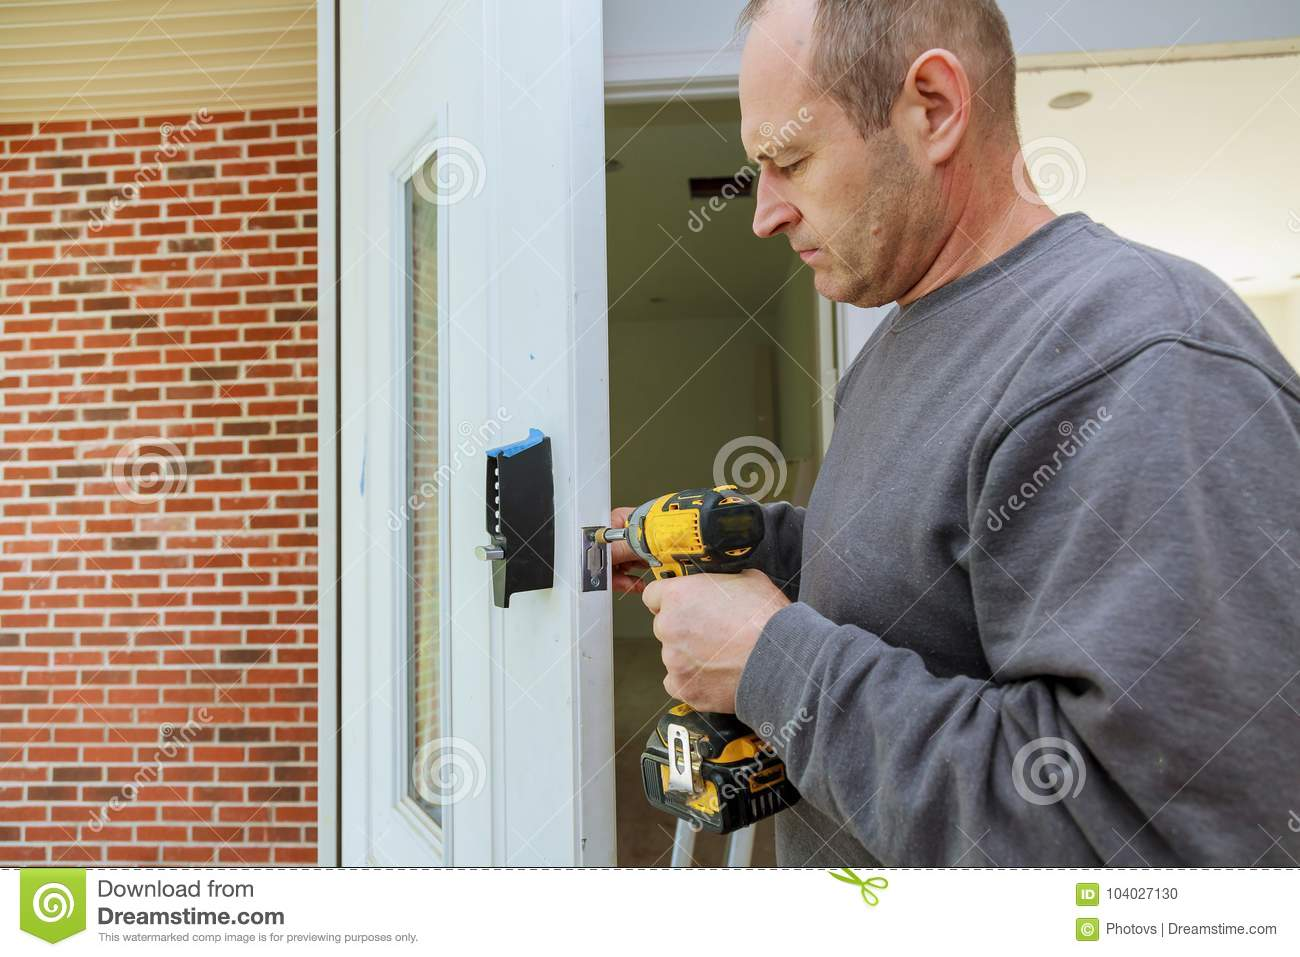 Installation interior door woodworker hands install lock